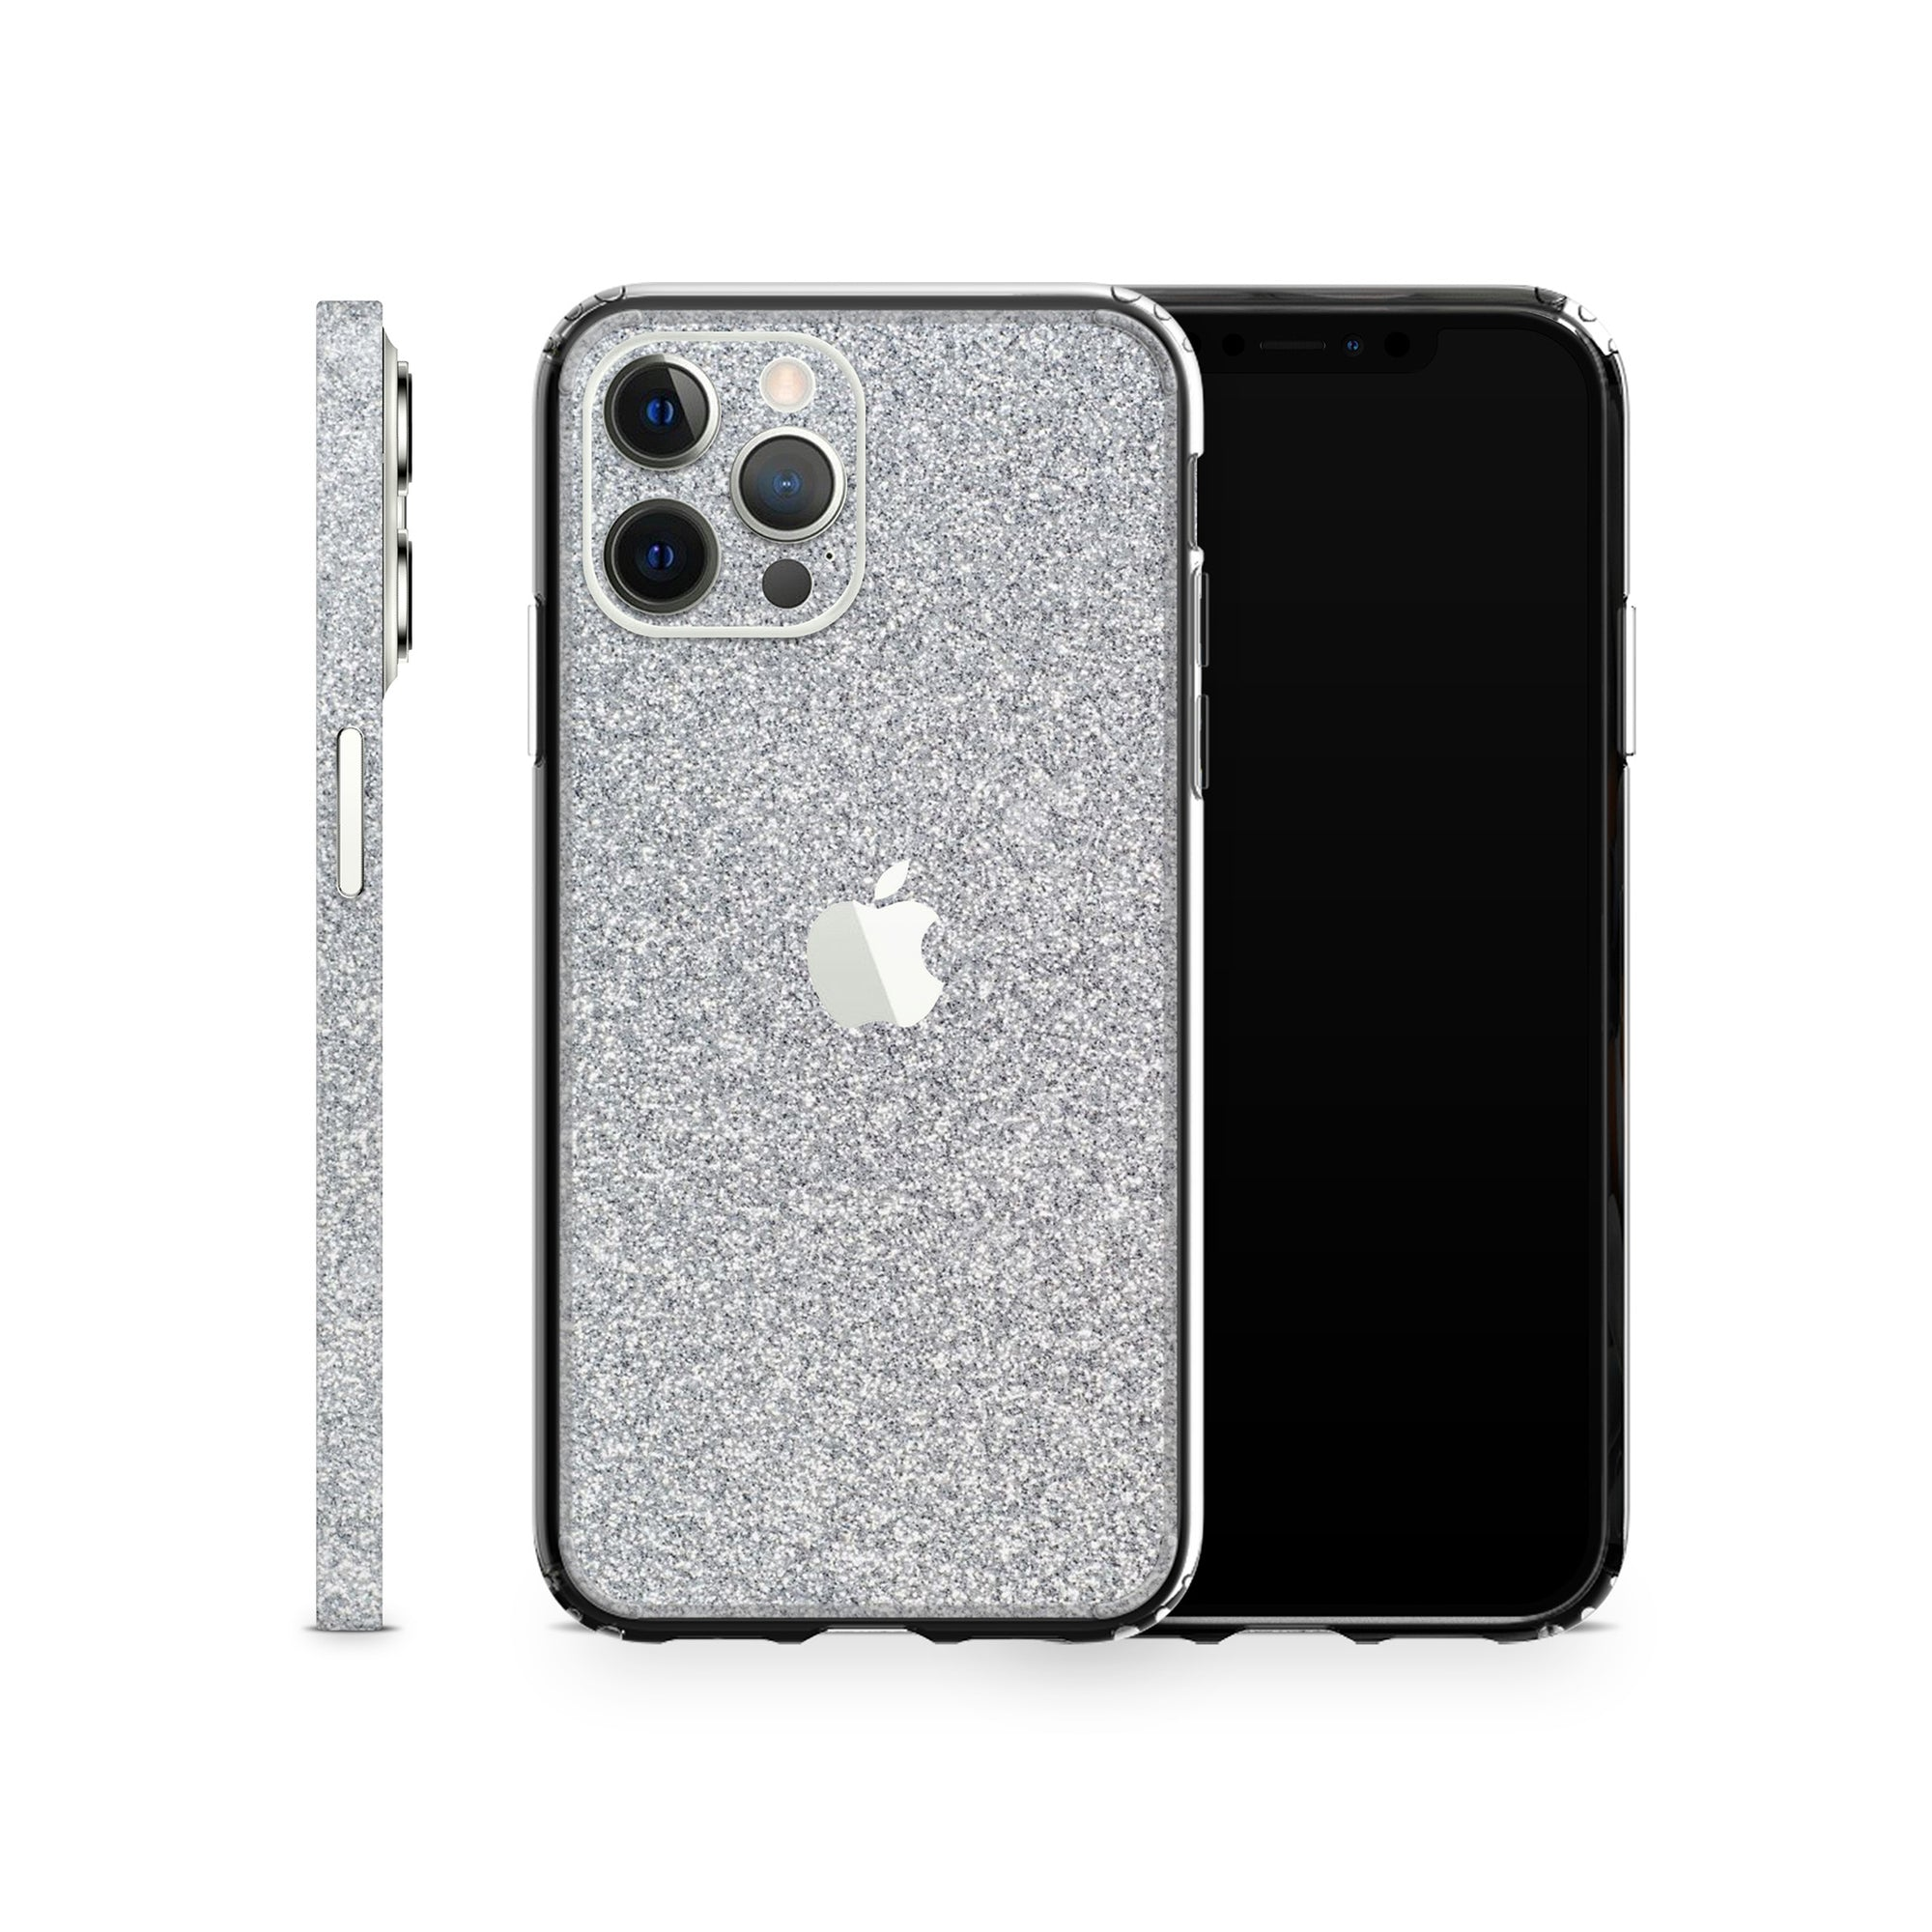 iPhone Case 12 Pro Blanc